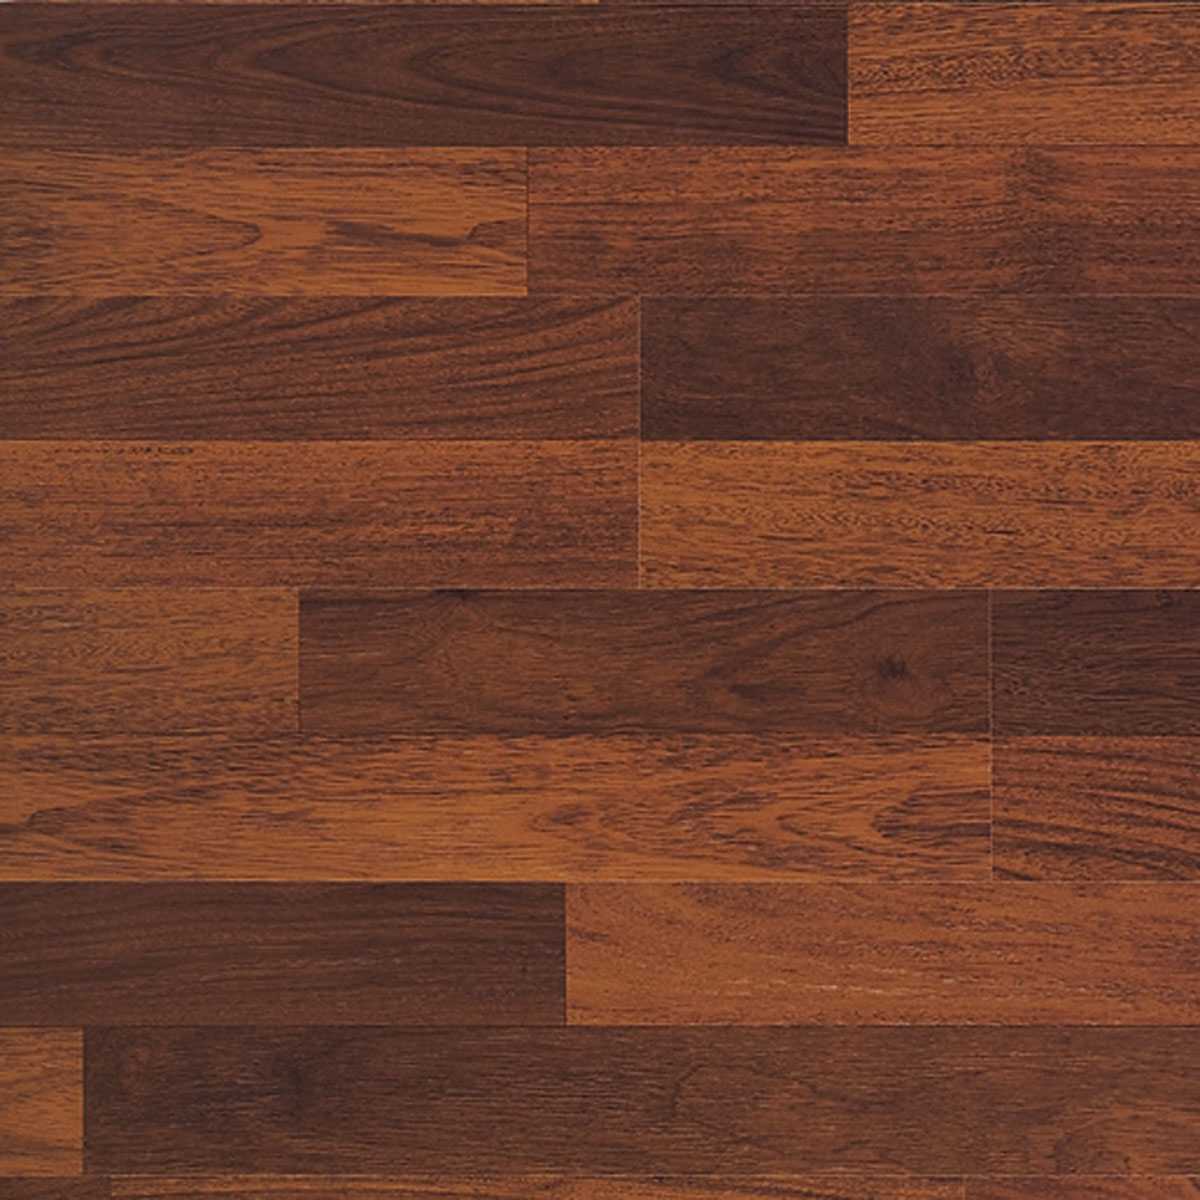 Brazilian cherry high gloss brazilian cherry laminate for Quick step laminate flooring